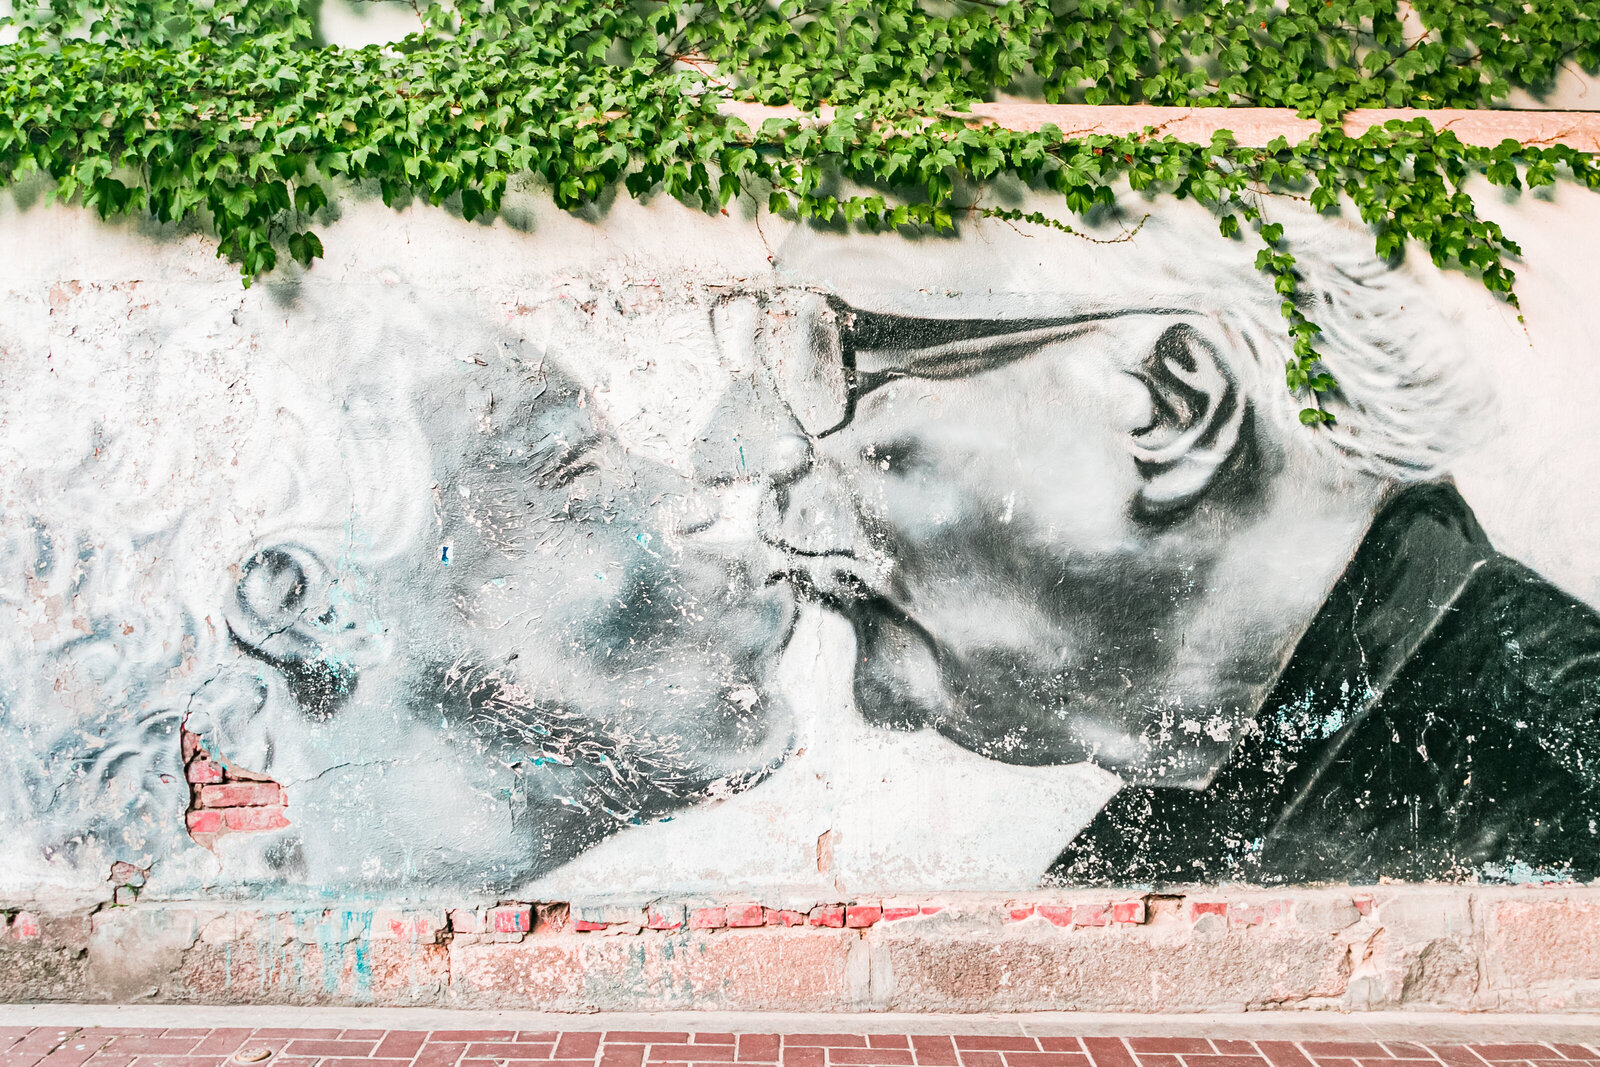 038-KBP-Seoul-South-Korea-Street-Art-color-kissing